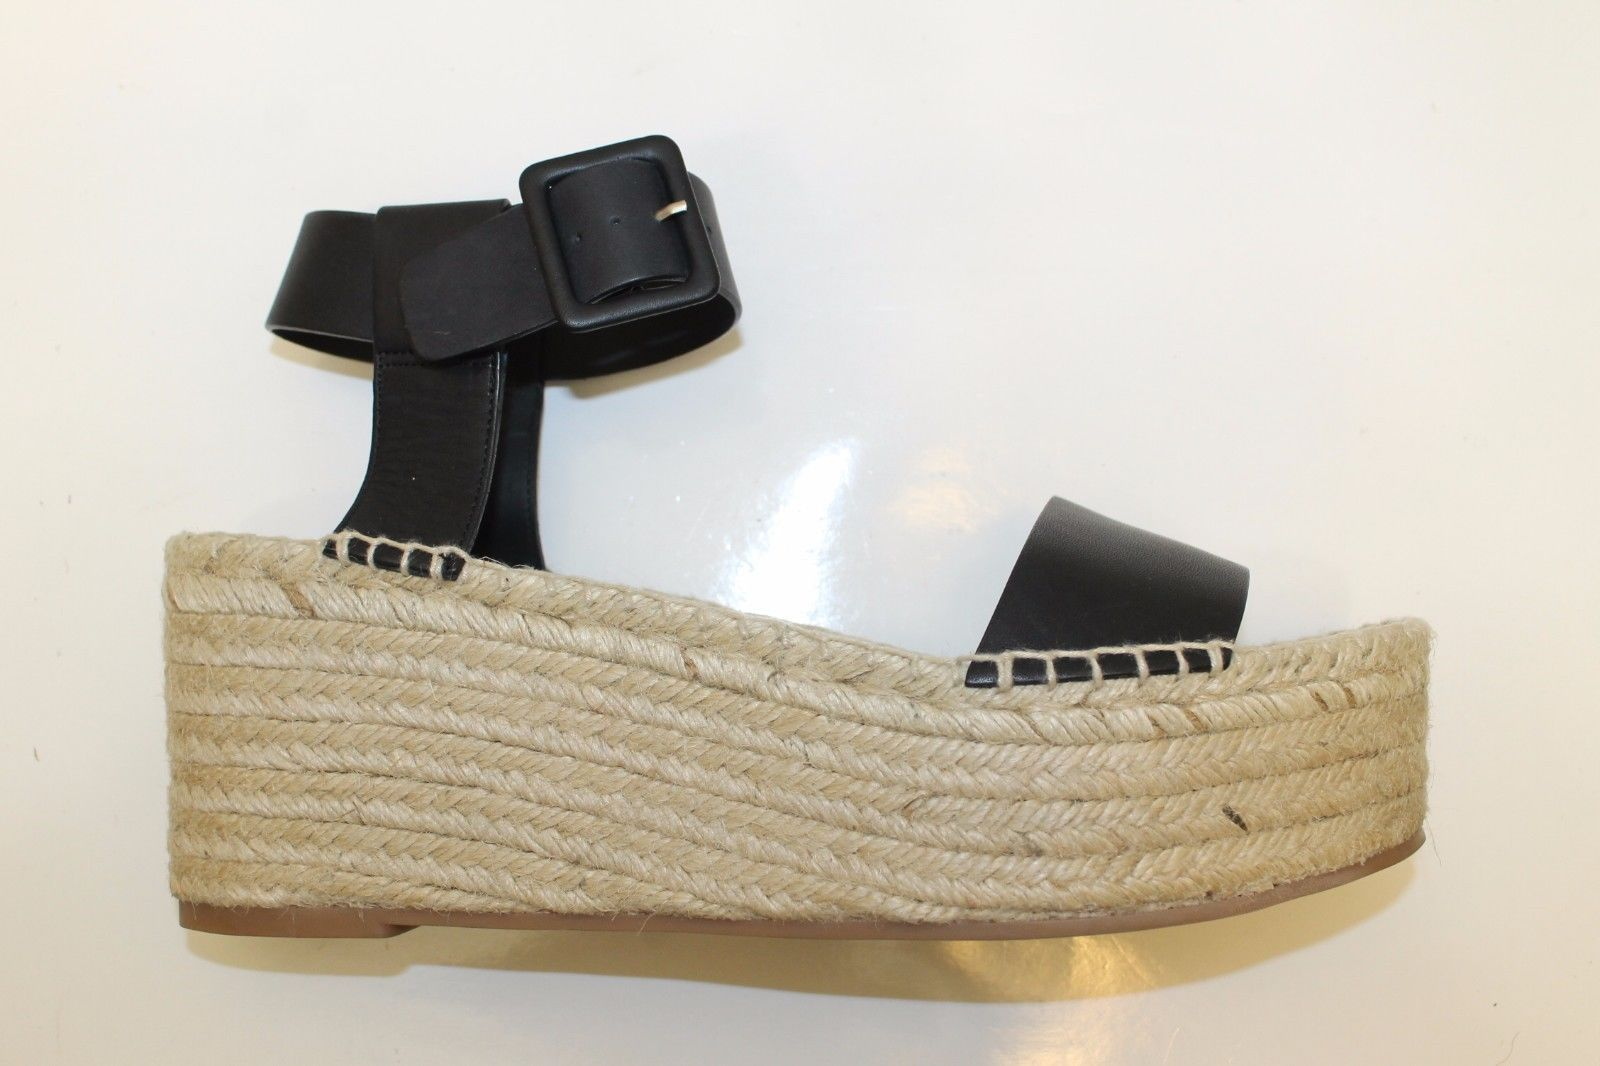 83f2b4e11 New Vince Abby Espadrille Leather Black Sandal Wedge Women Shoes 11 Strap